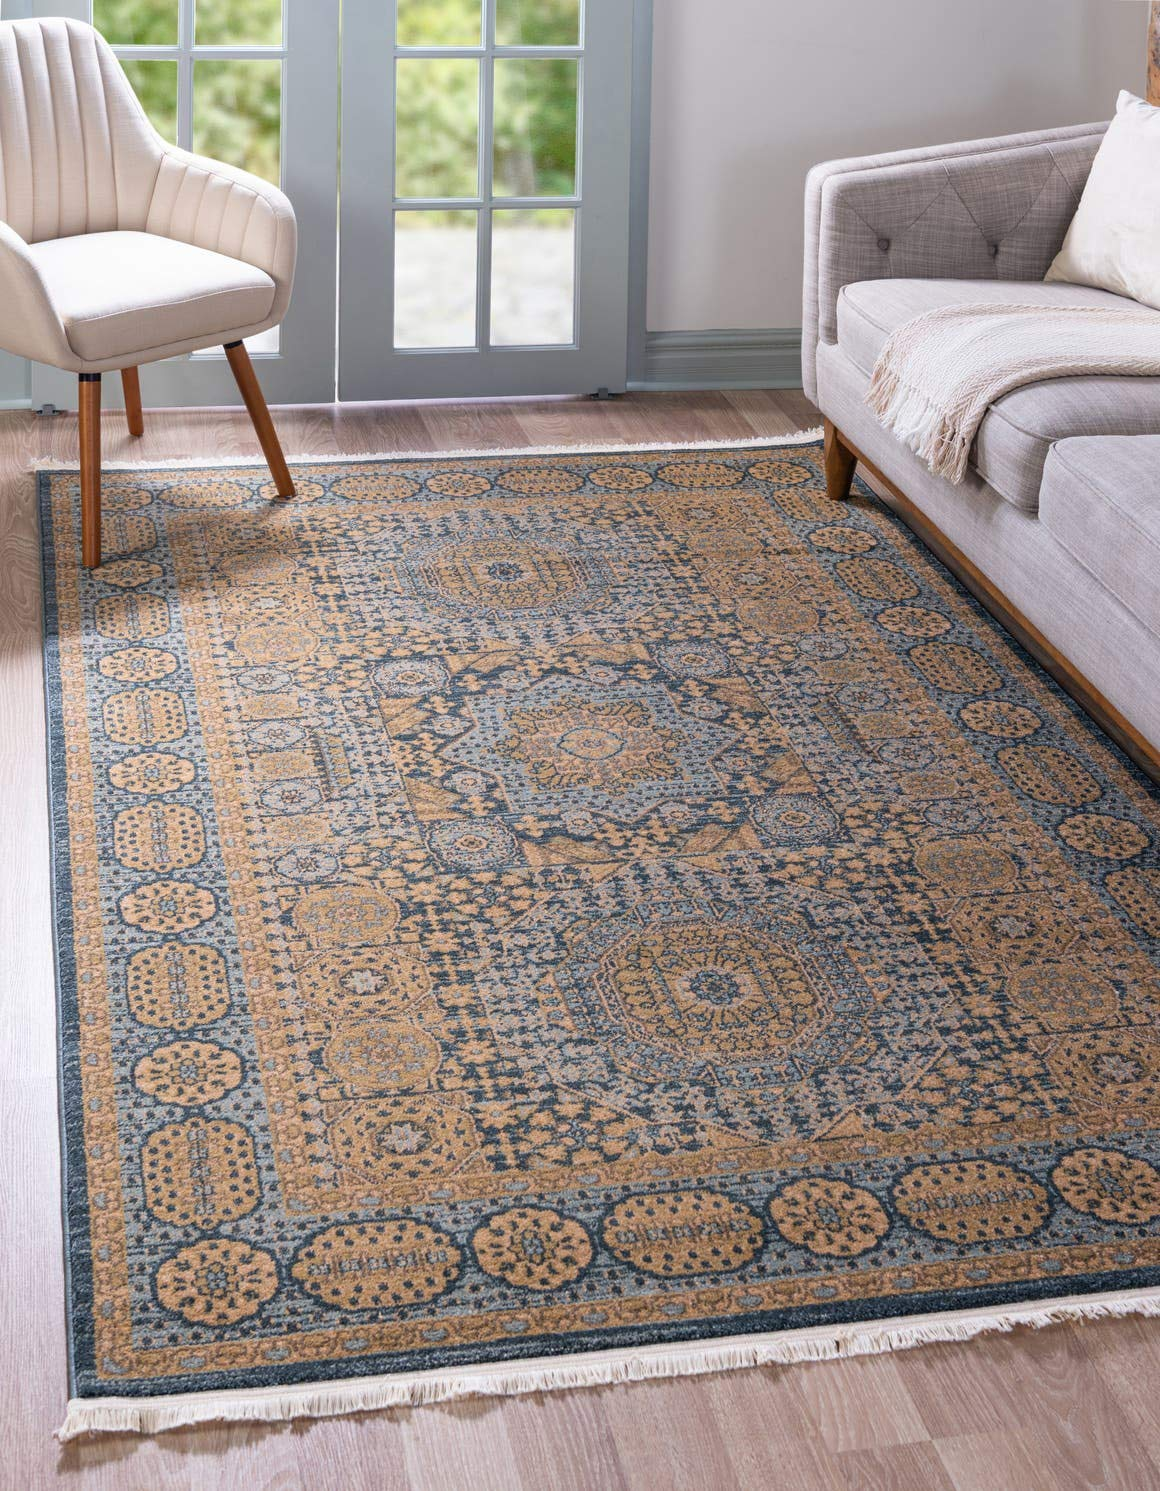 Unique Loom Palace Collection Traditoinal Geometric Classic Blue Area Rug 5 0 x 8 0